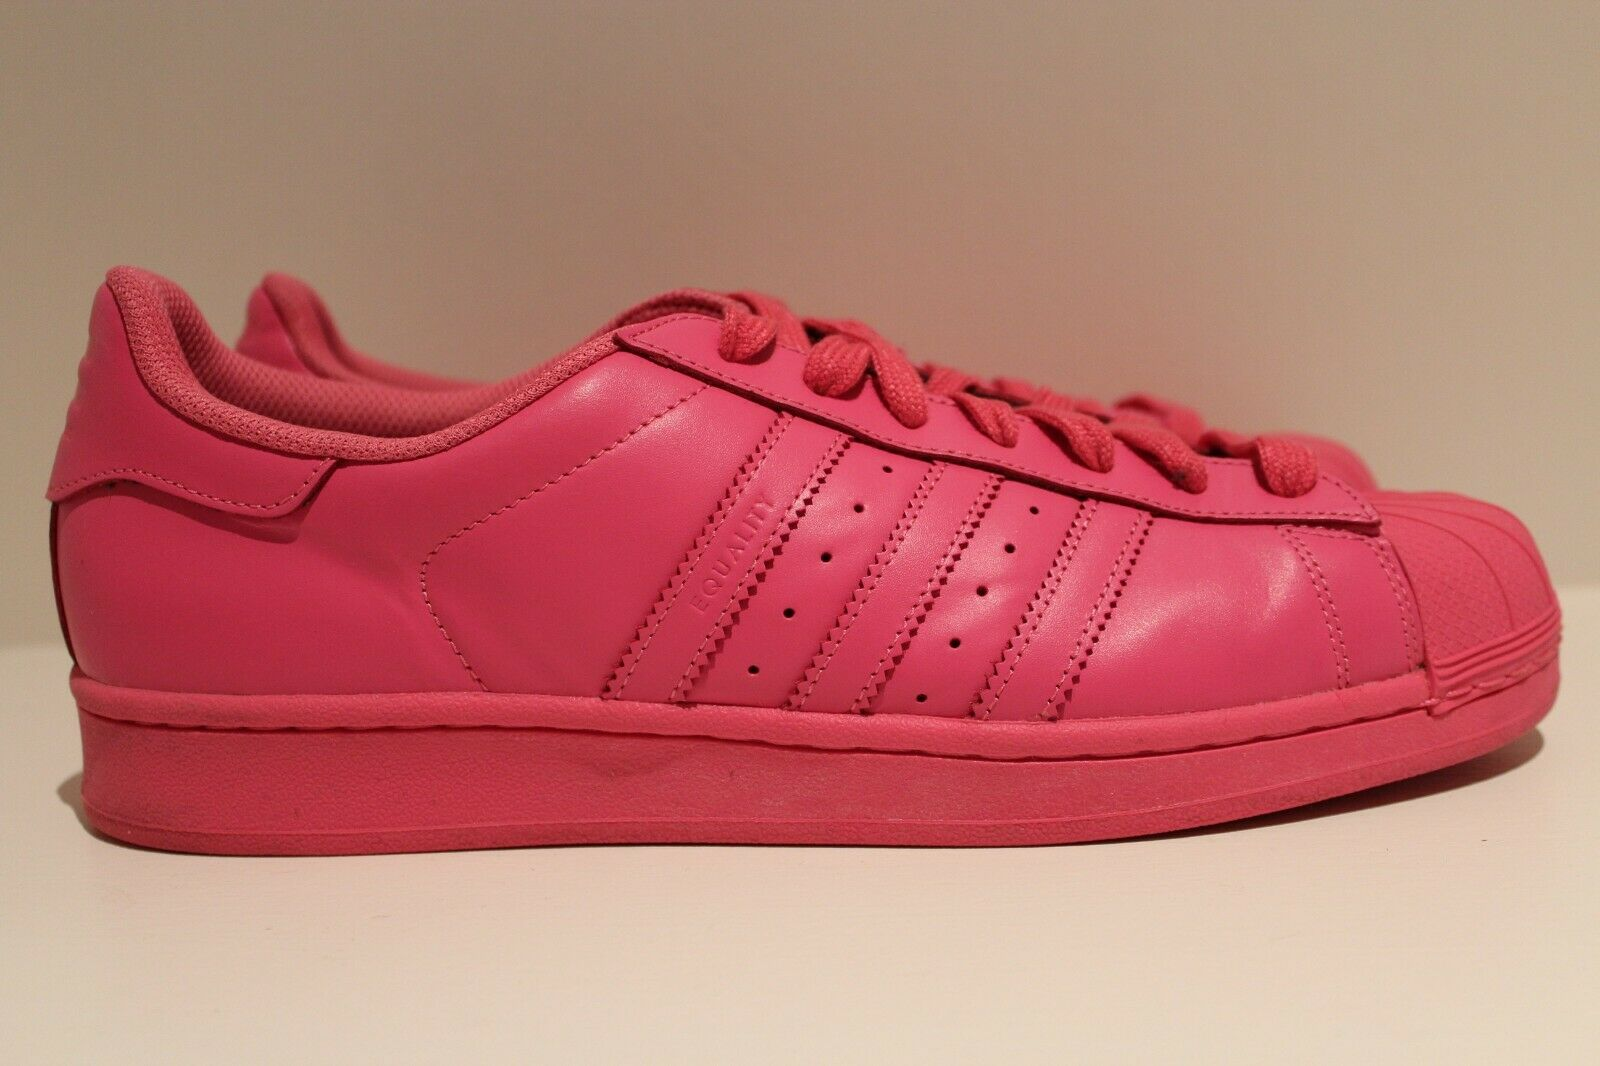 Adidas Superstar Supercolor Pack Pharrell Williams Solar Pink Size 11.5 S41839